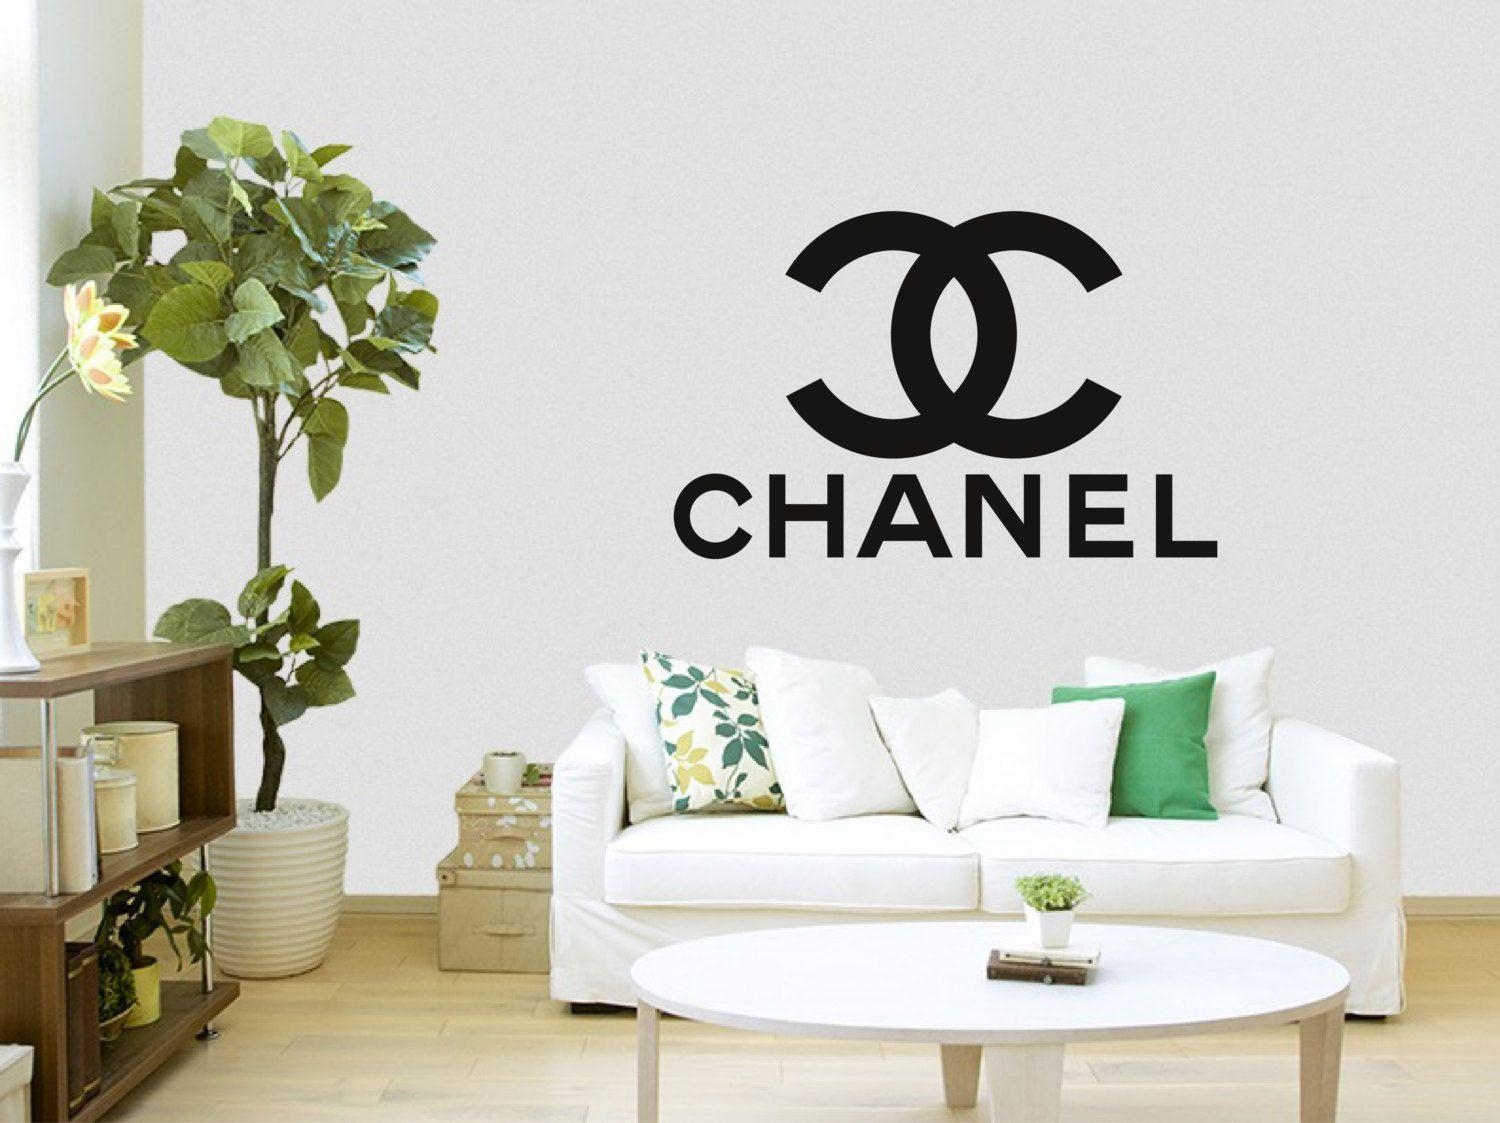 Coco Chanel Logo With Words Wall Sticker Inside Coco Chanel Wall Stickers (View 2 of 20)